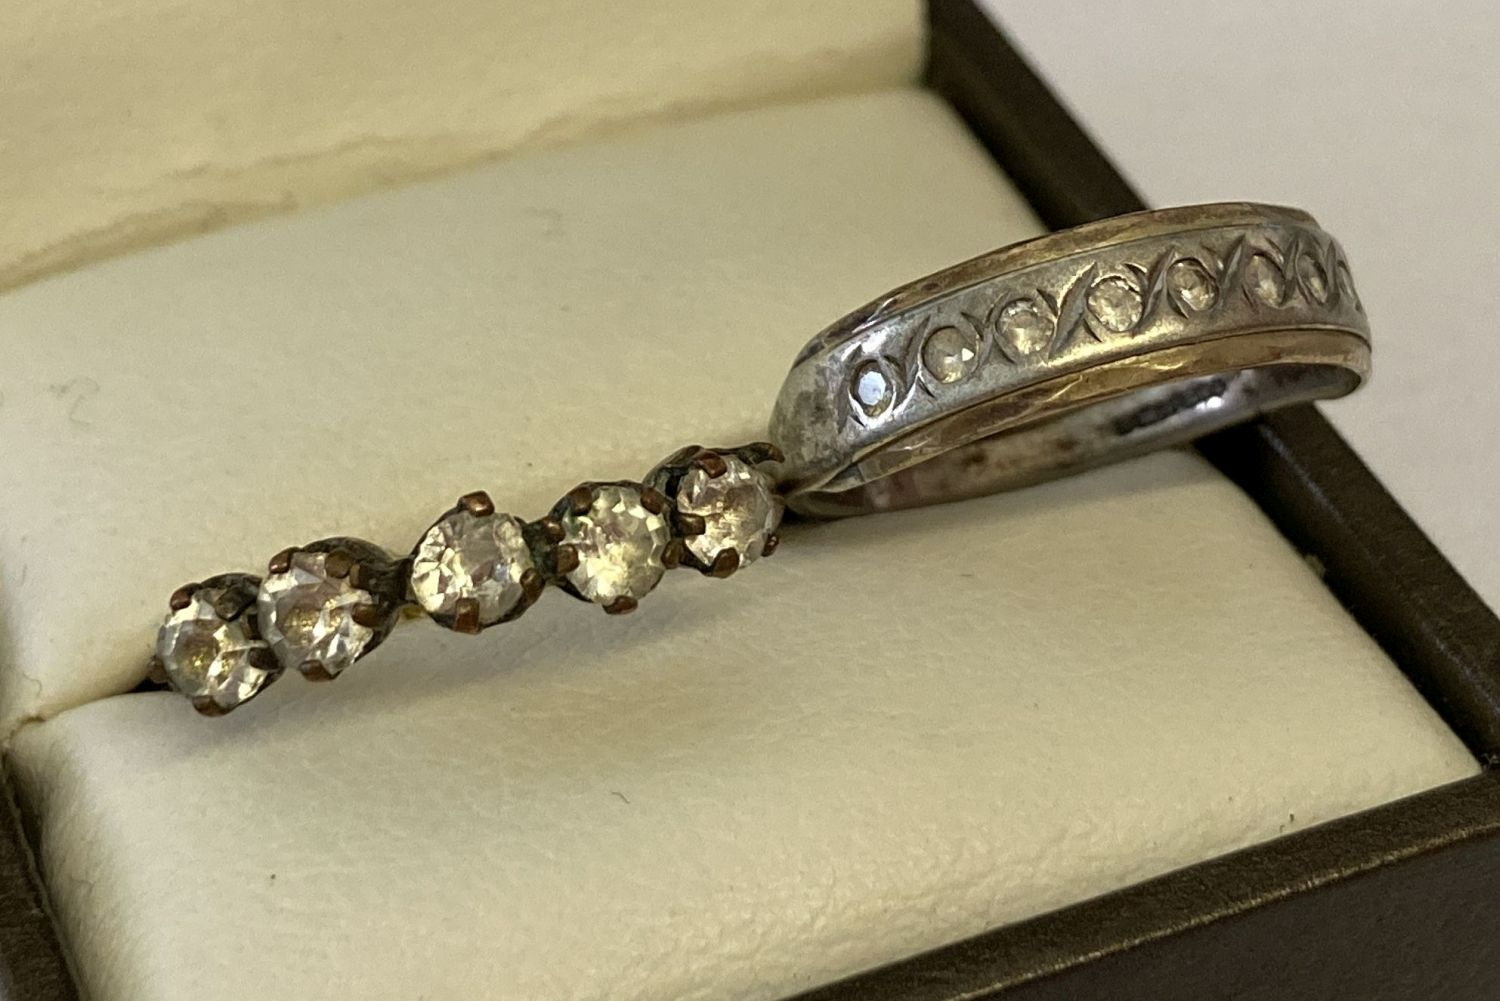 A vintage silver eternity style ring set with 9 small round cut diamonds, ring size M½.